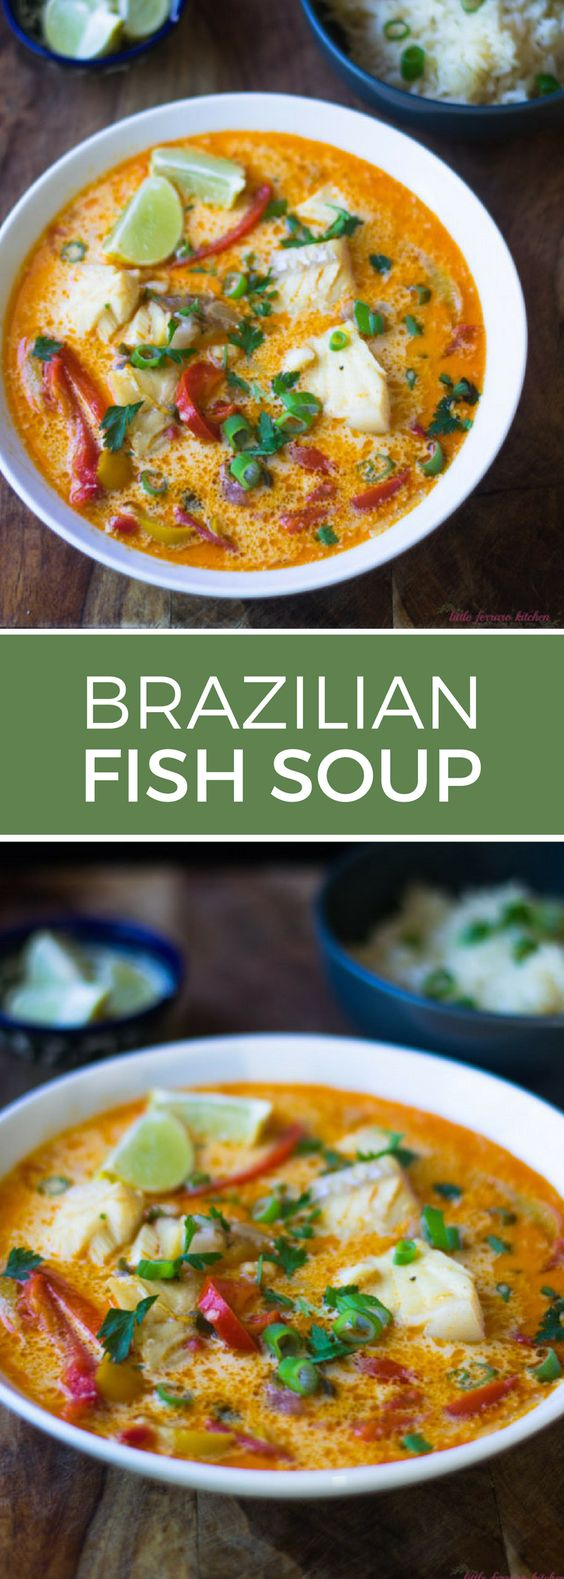 Brazilia Fish Soup